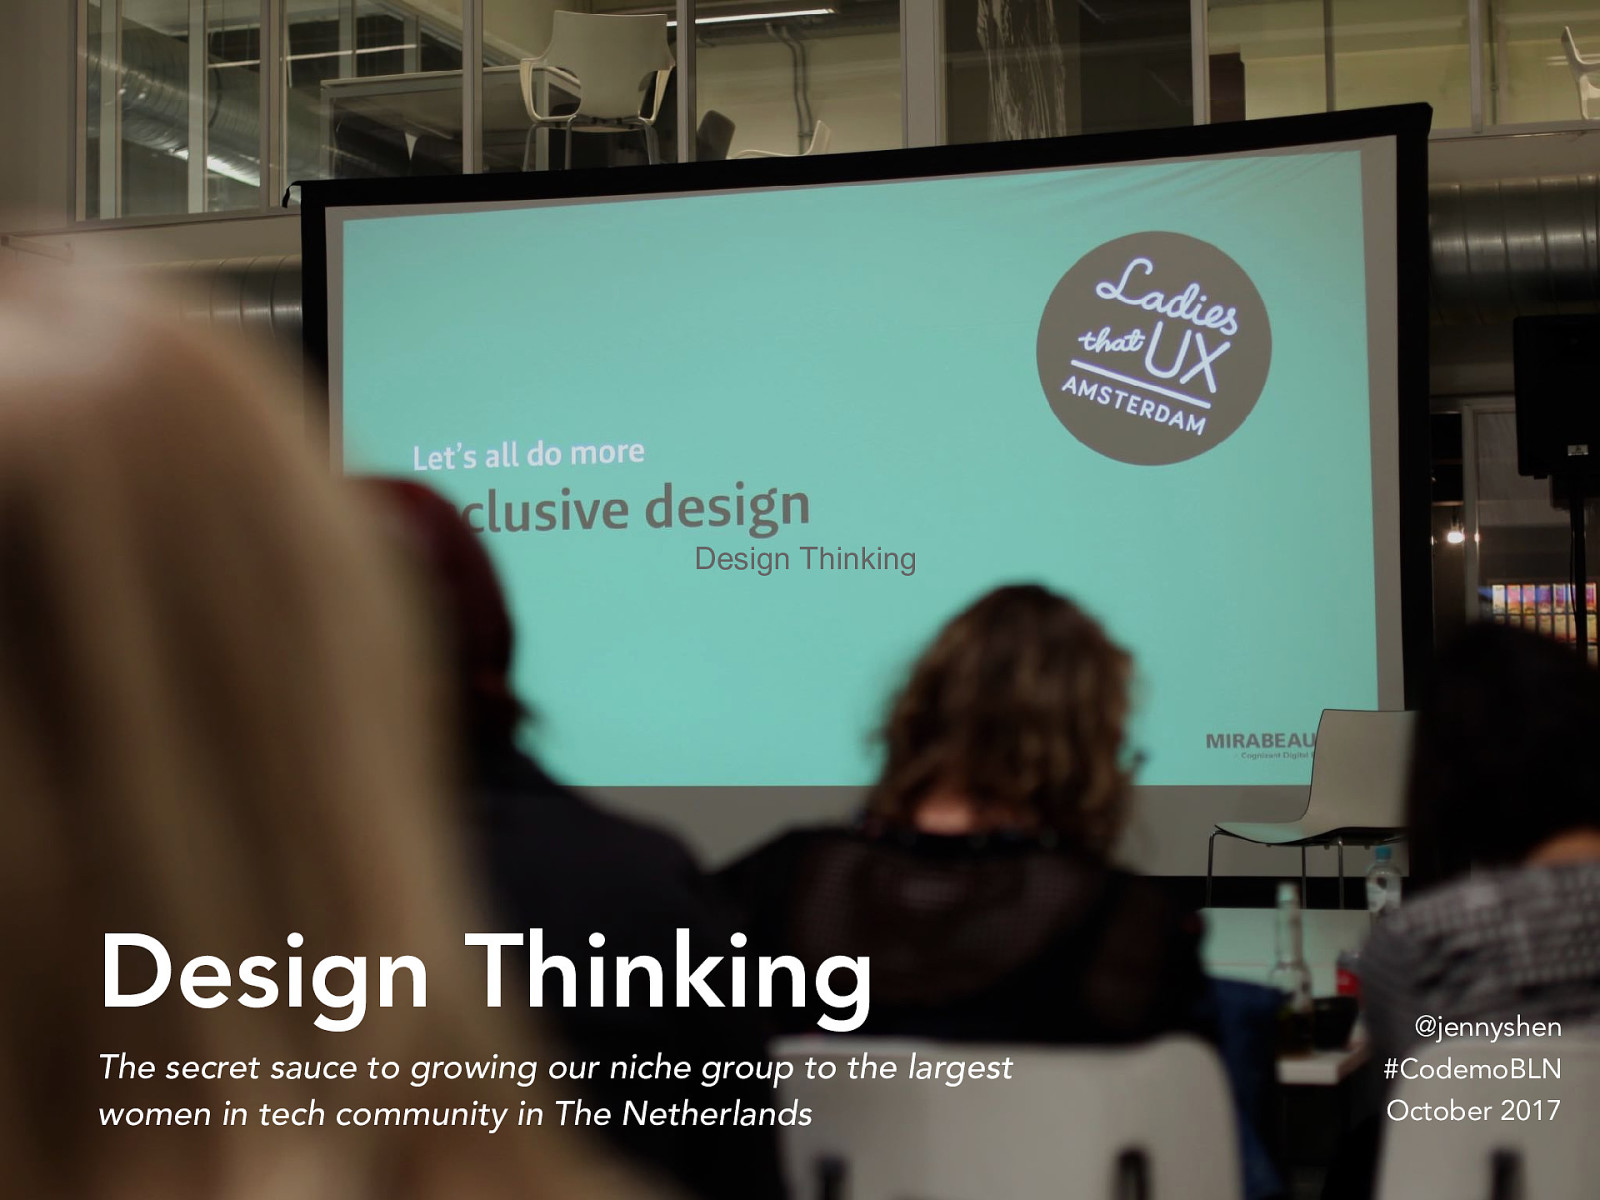 Design Thinking—the secret sauce to growing our niche group to the largest women in tech community in The Netherlands